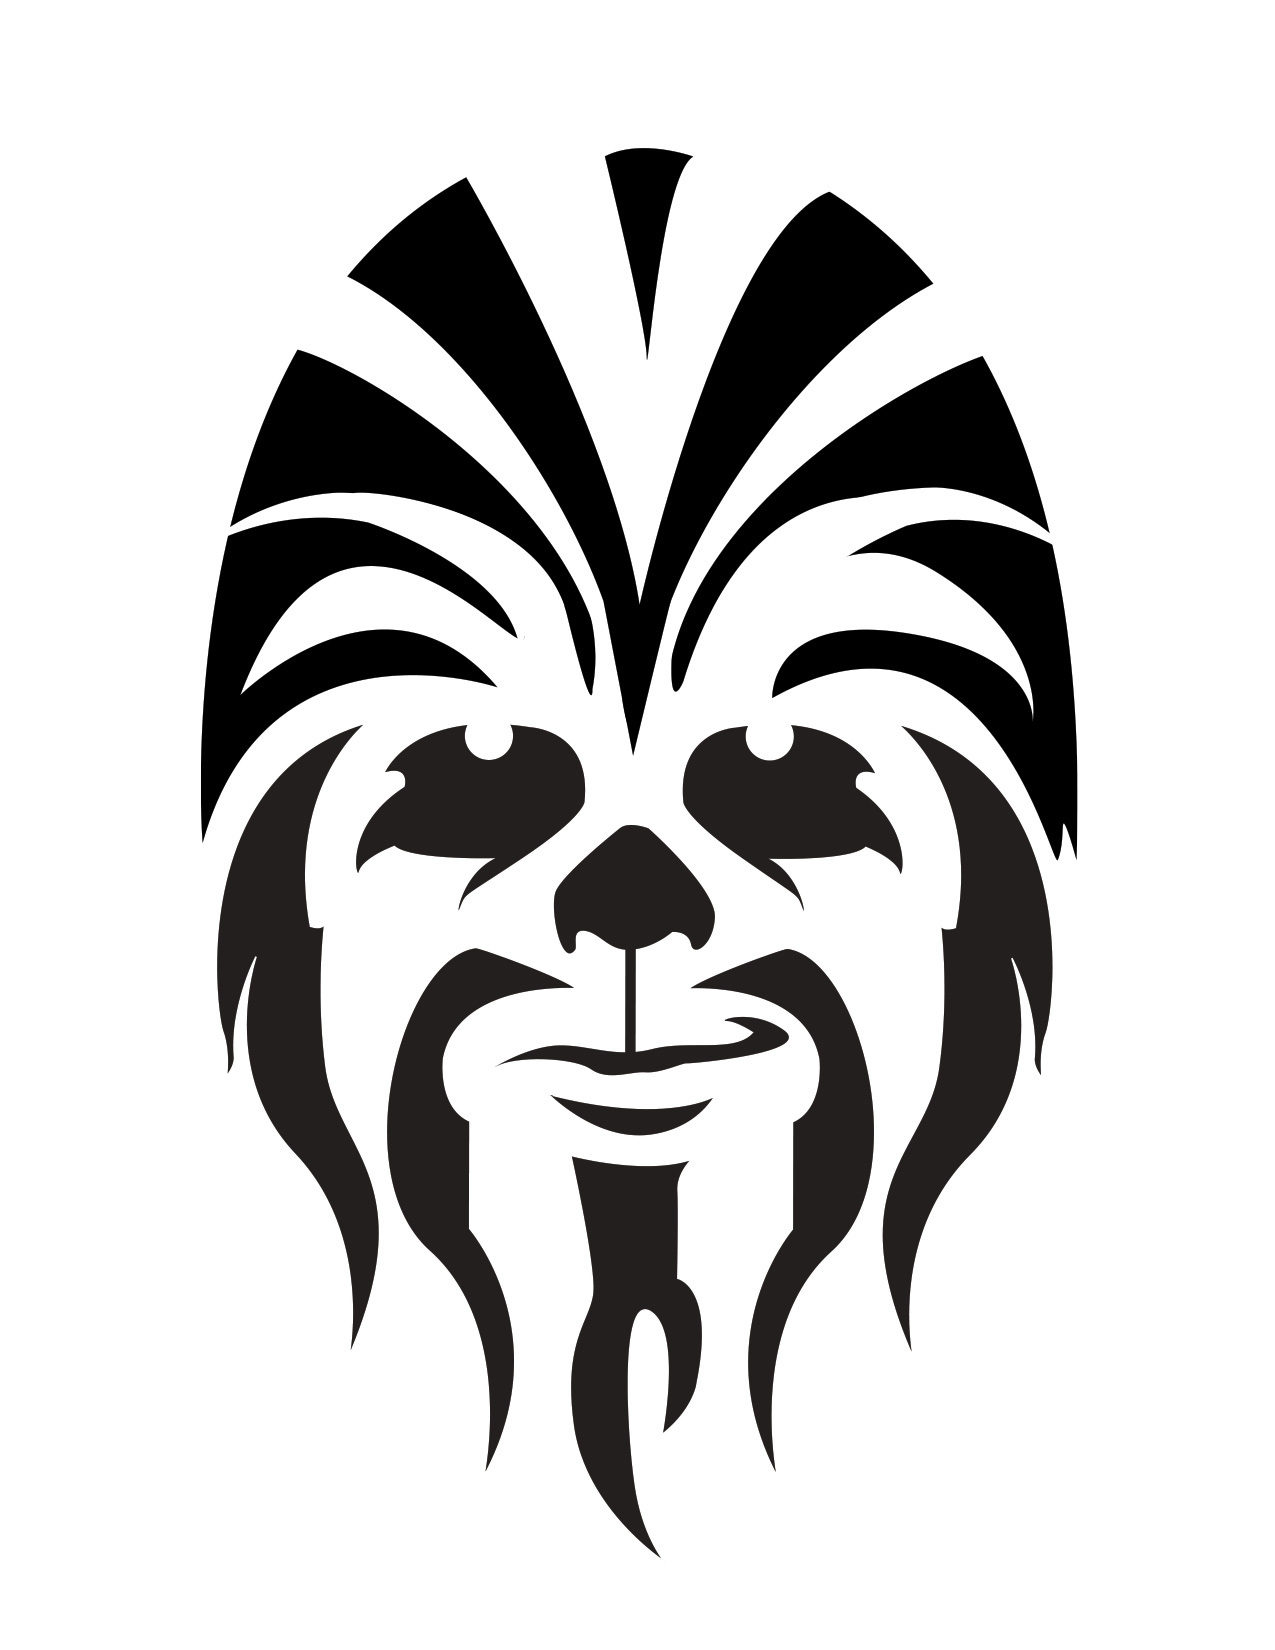 Chewbacca clipart black and white. Icon free icons library